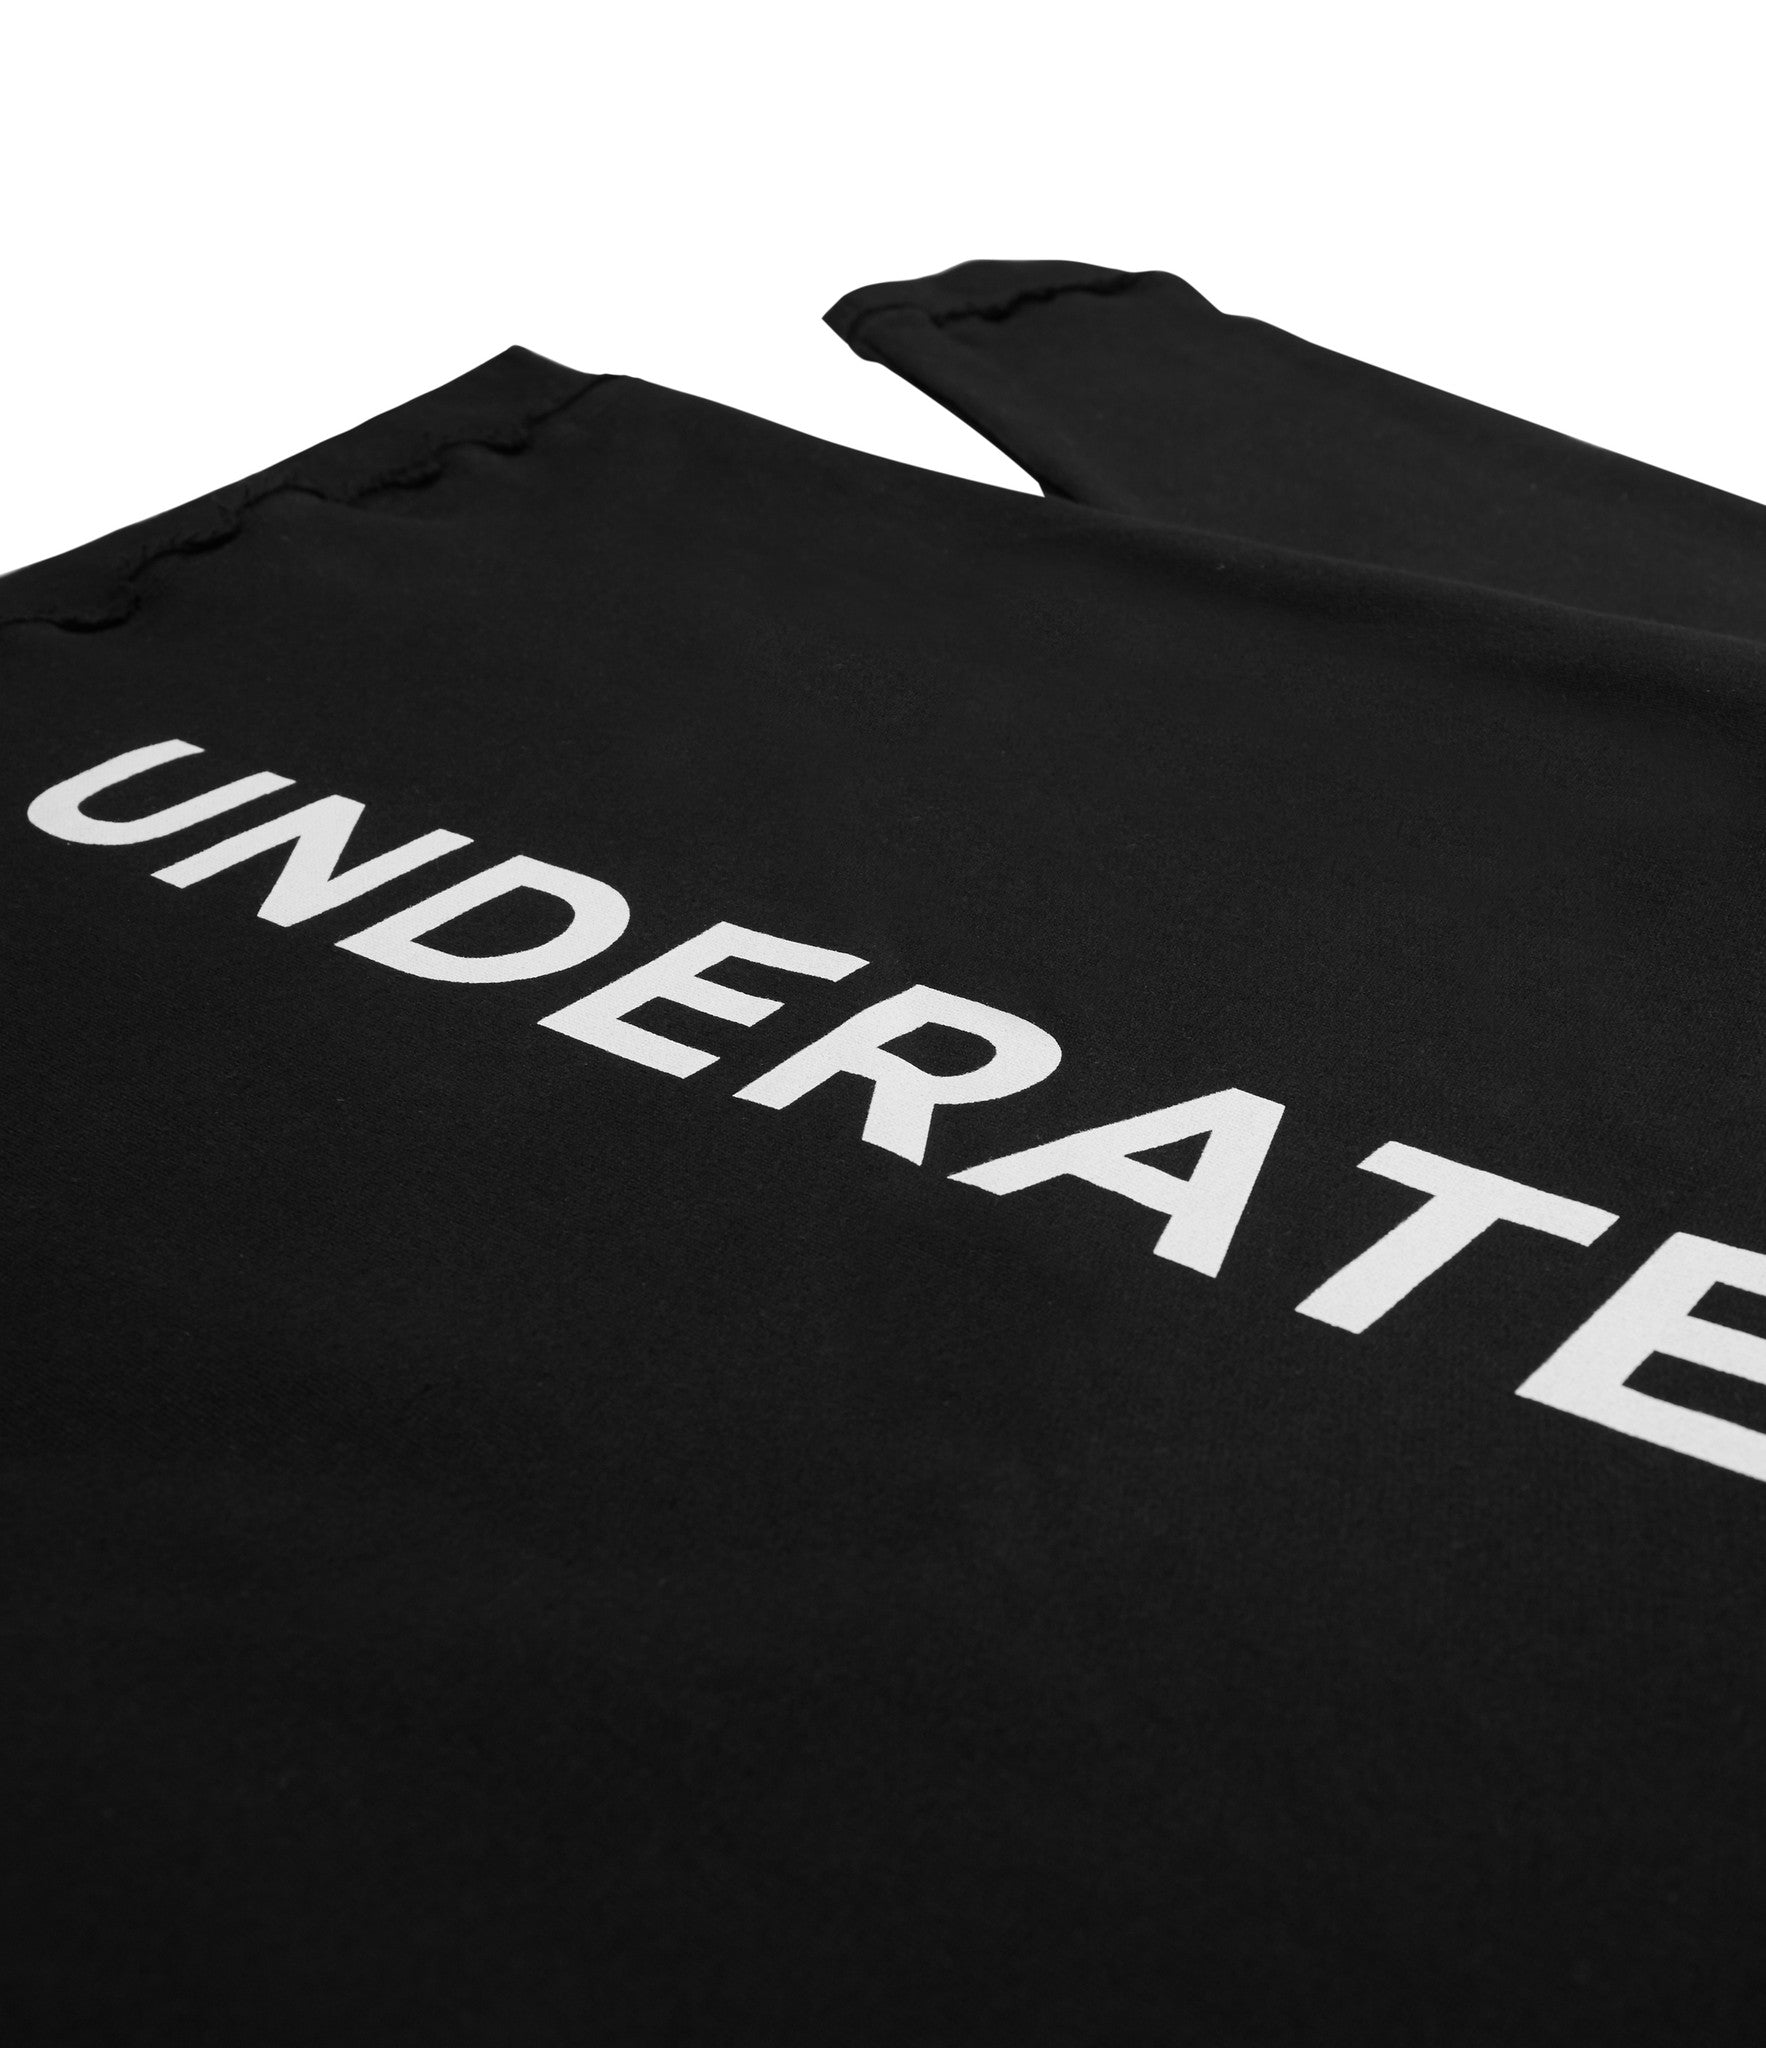 HD334 Printed Hoody - Black - underated london - underatedco - 3